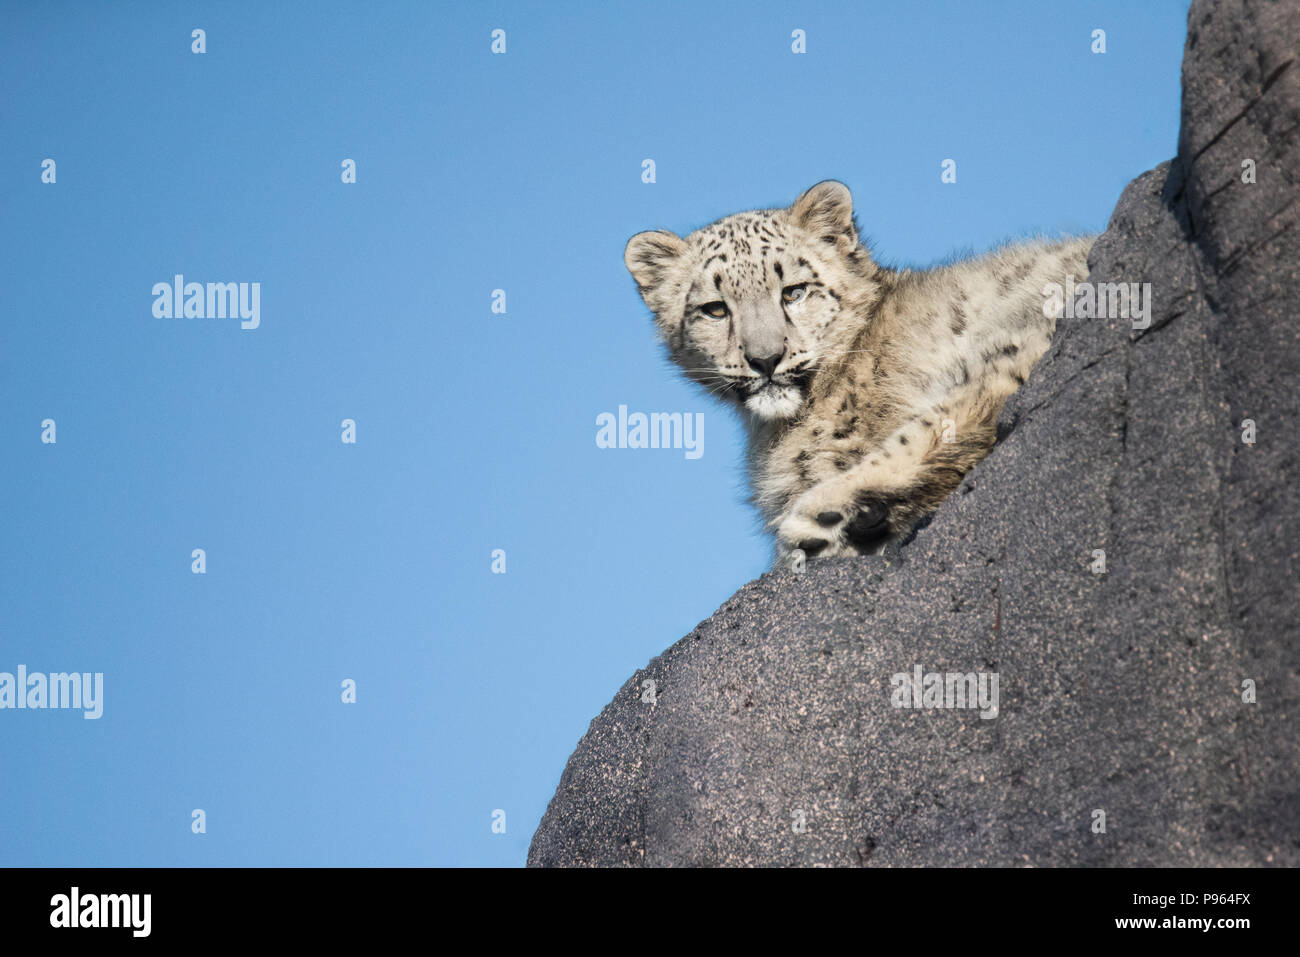 A young snow leopard explores its habitat at The Toronto Zoo, where it is part of a successful captive breeding program for this vulnerable species. - Stock Image